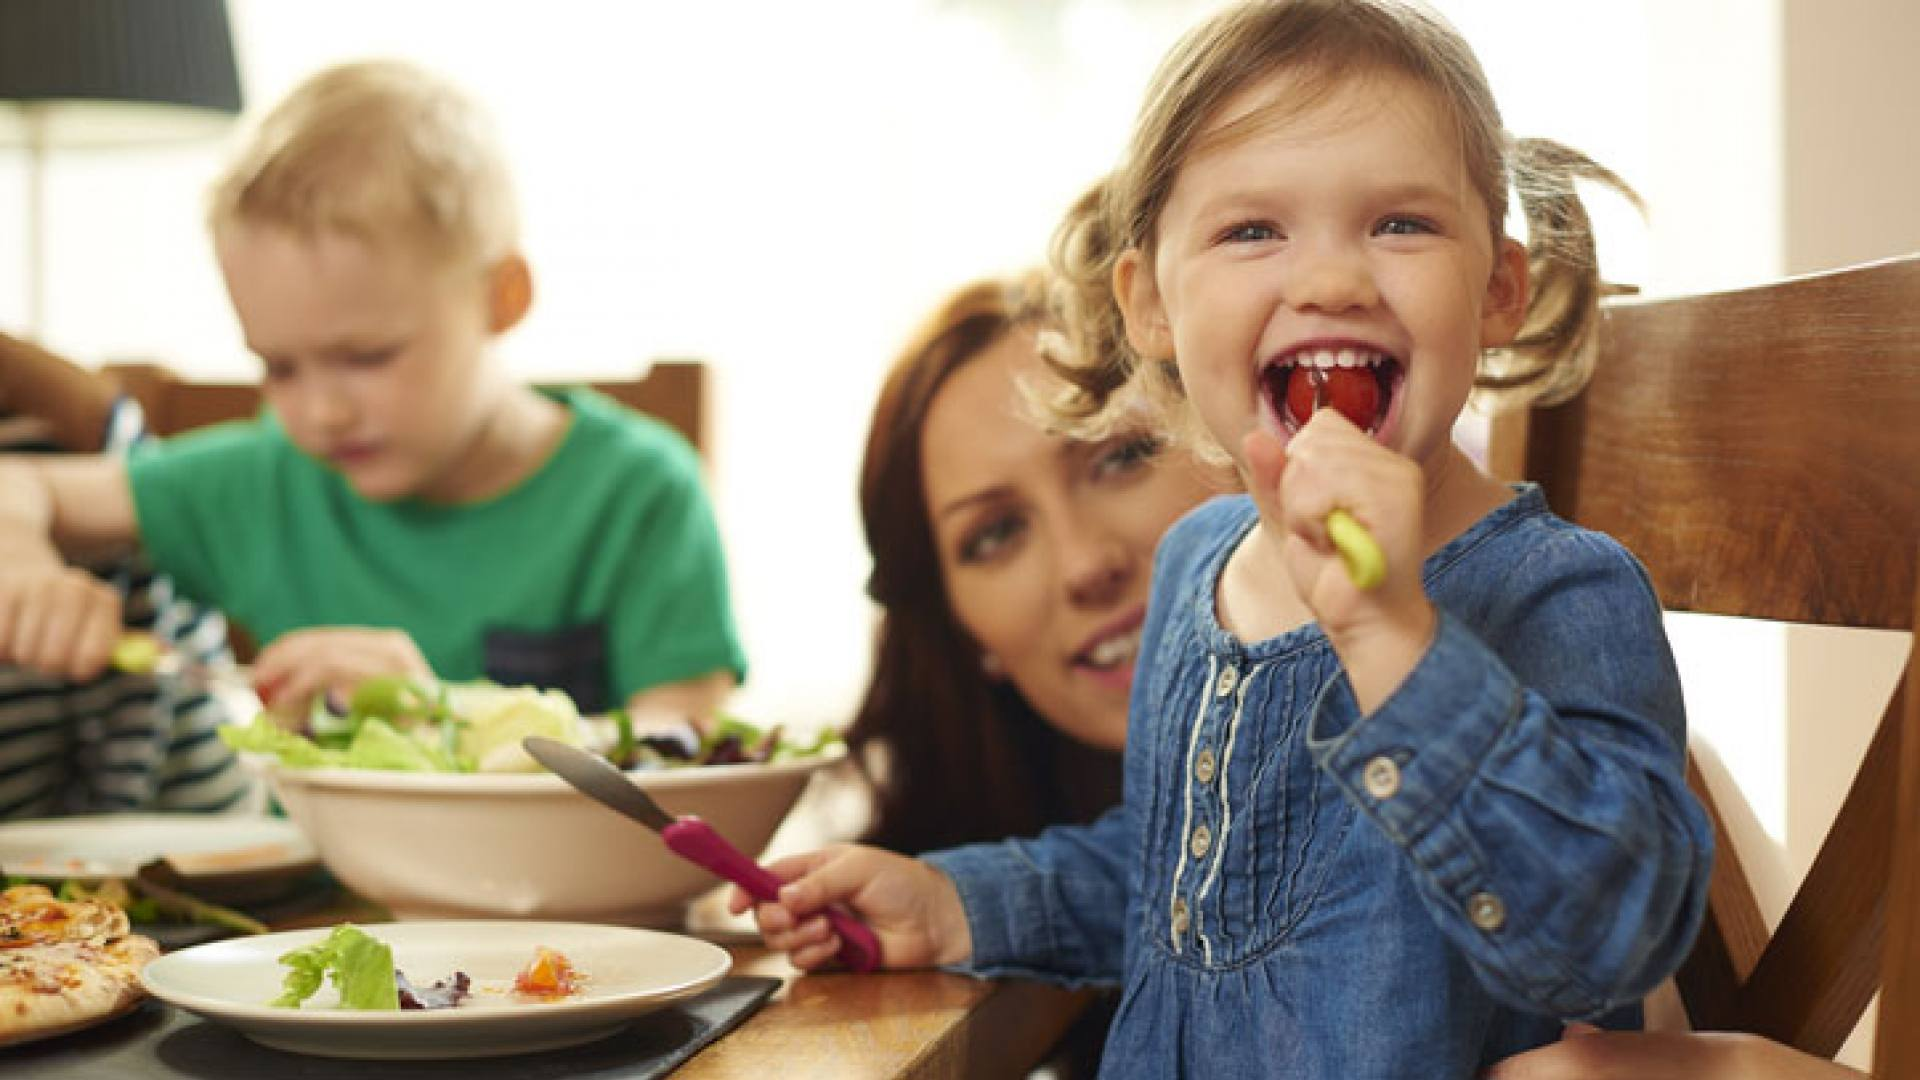 Grimsby - Baby girl happily eating with her family